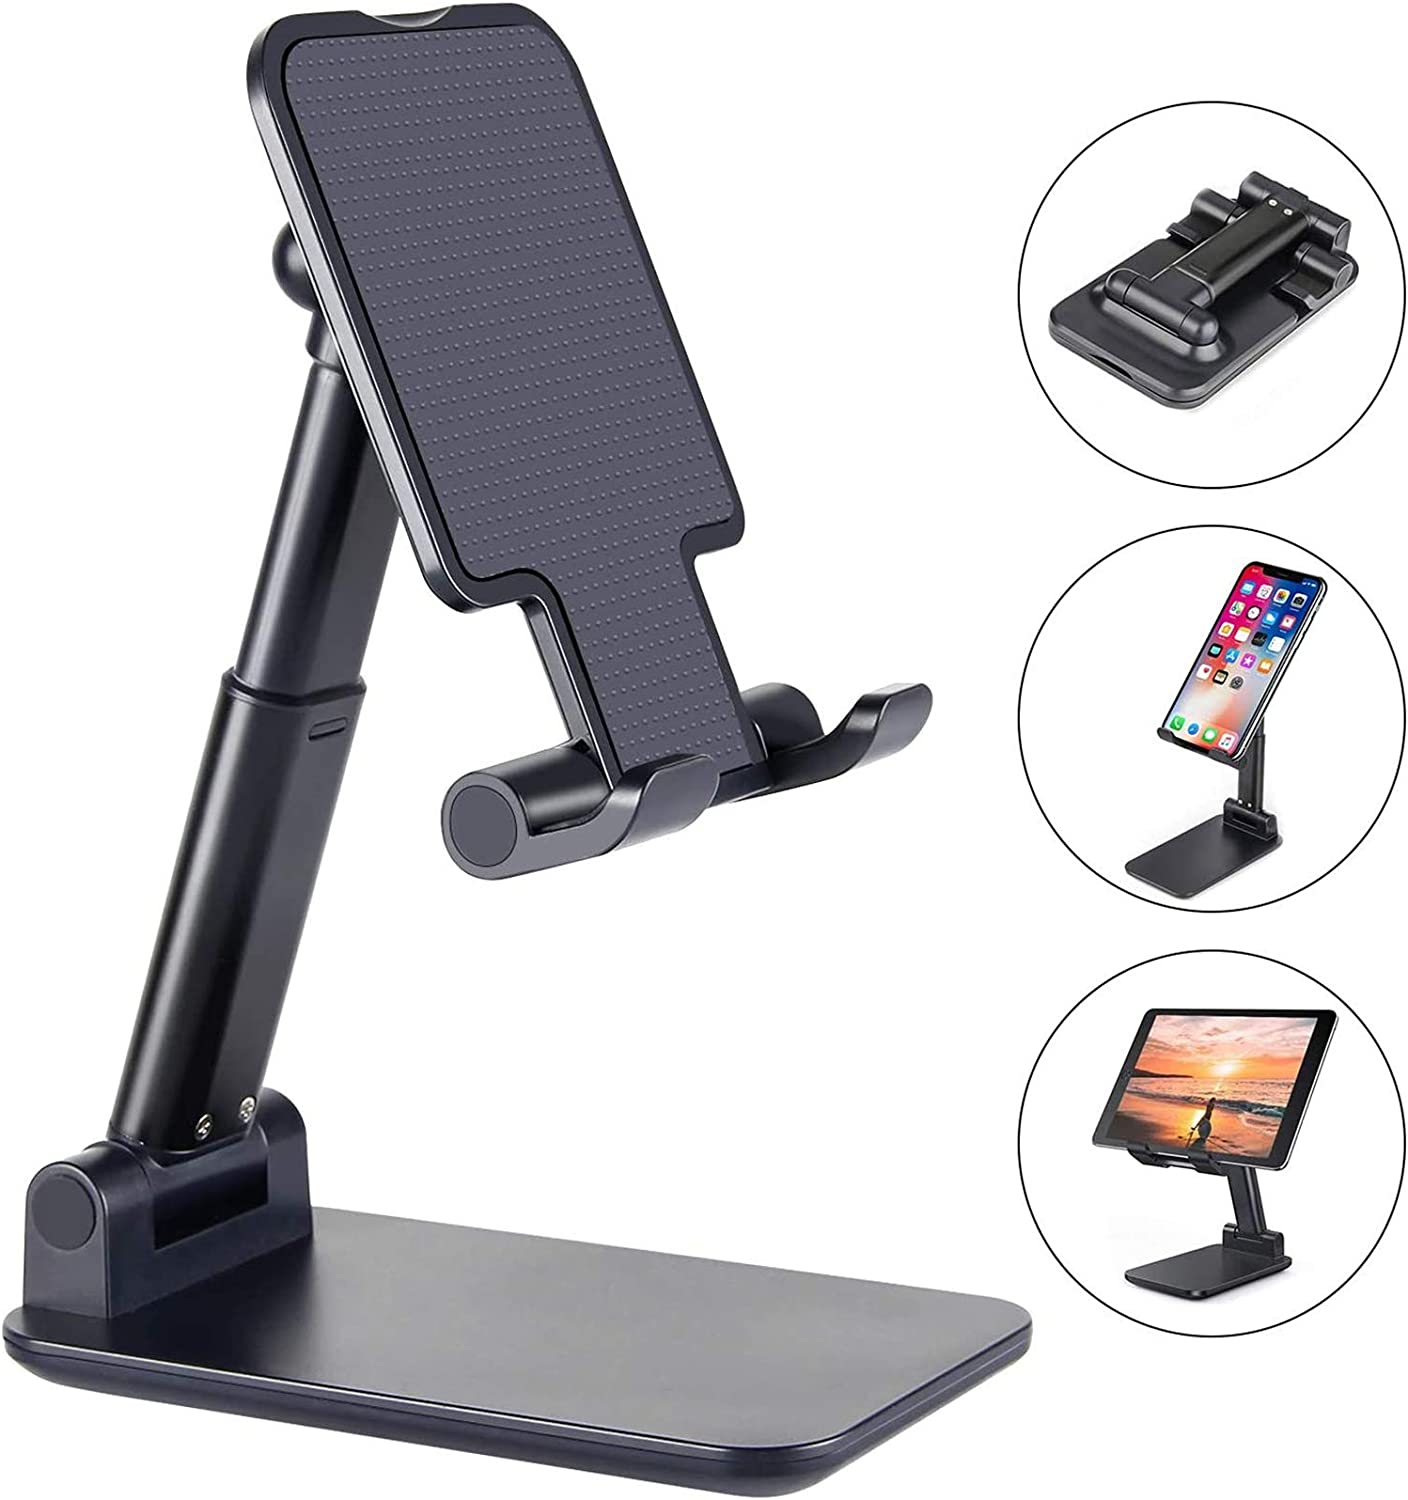 Cell Phone Stand, Foldable Portable Desktop Stand Adjustable Height and Angle Holder Compatible with Smartphone/ iPad/ Kindle/ Tablet/ iPhone/ Nintendo/ Switch (Black)